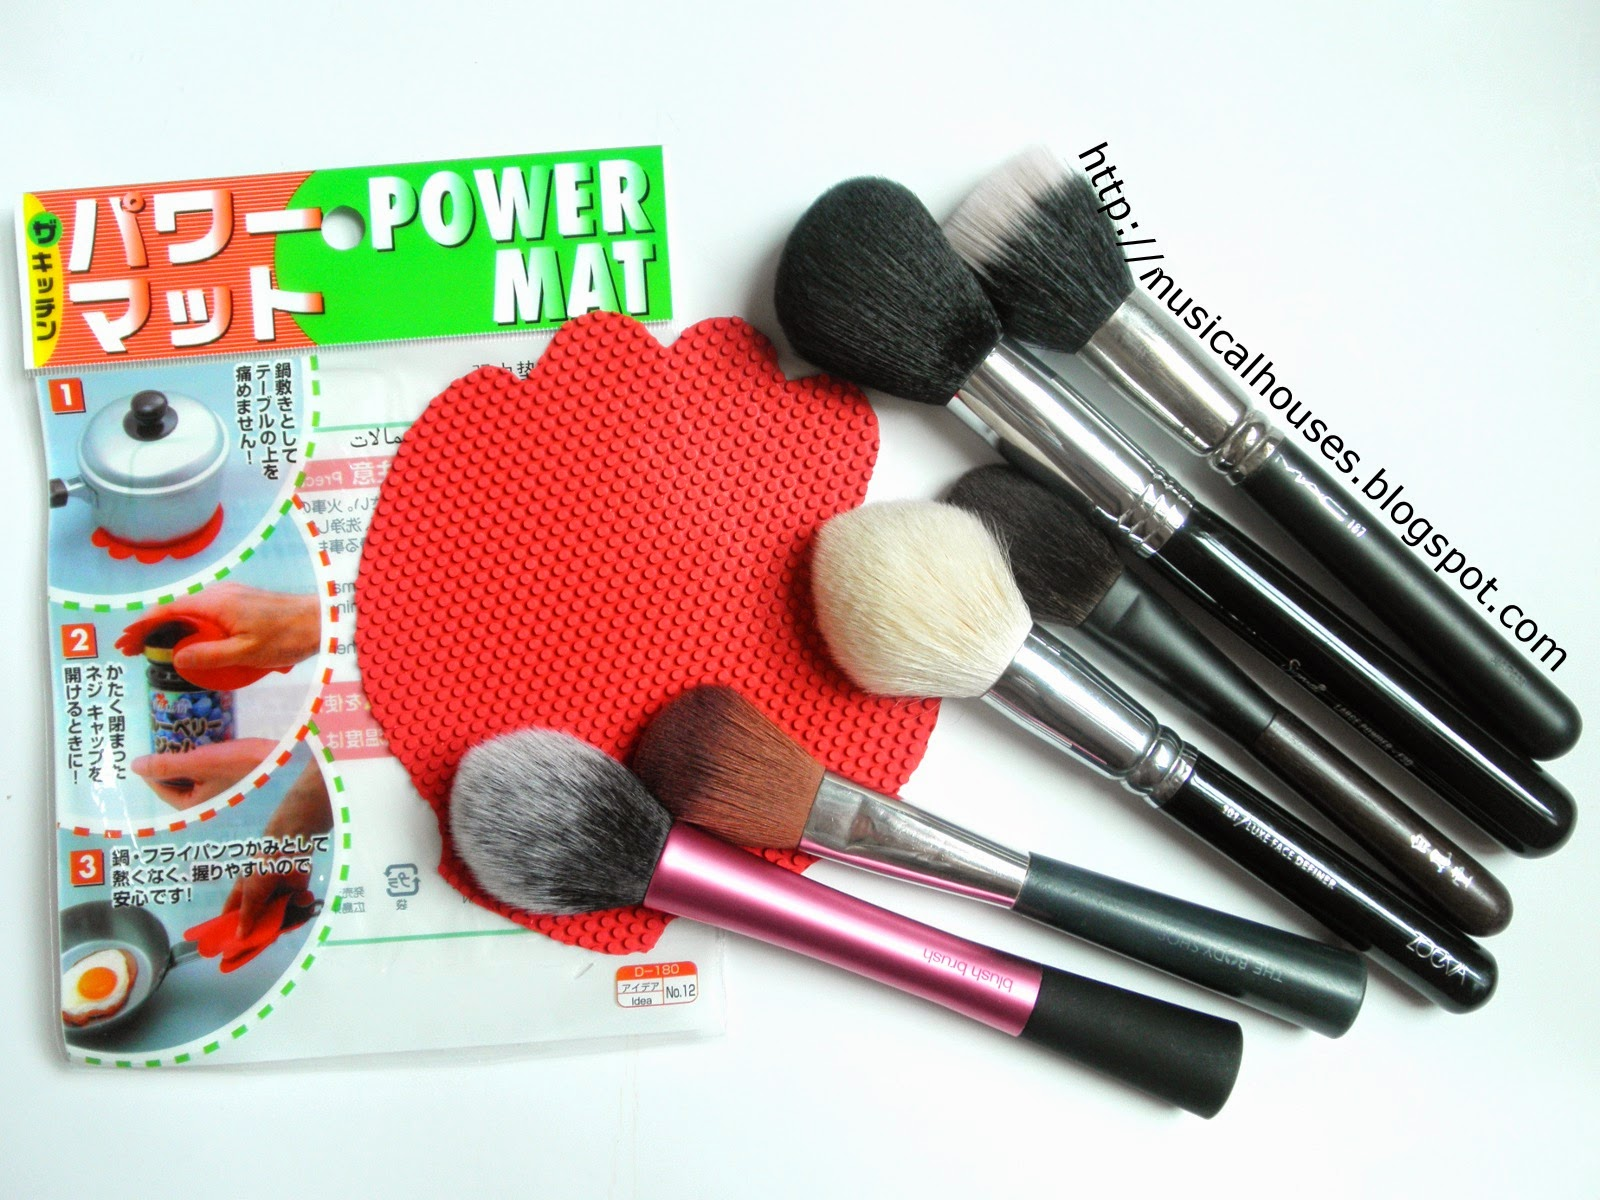 Sigma Spa Brush Cleaning Glove Dupe: Daiso Silicone Mat/Pot Holder ...